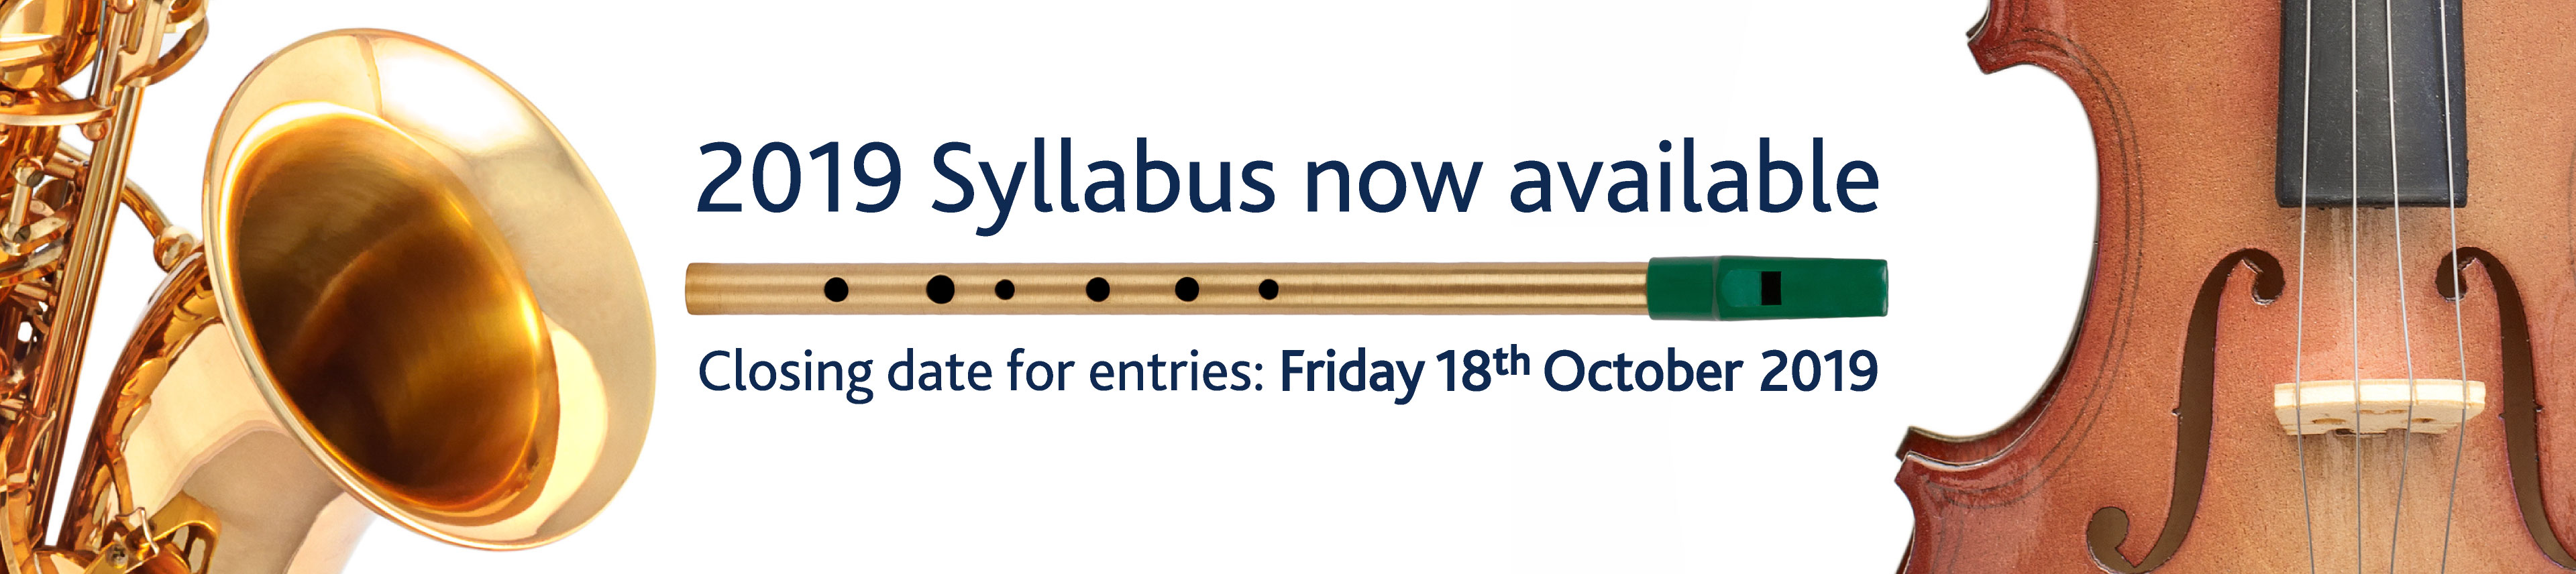 2019 Syllabus Now Available. Closing date for entries: Friday 18th October 2019